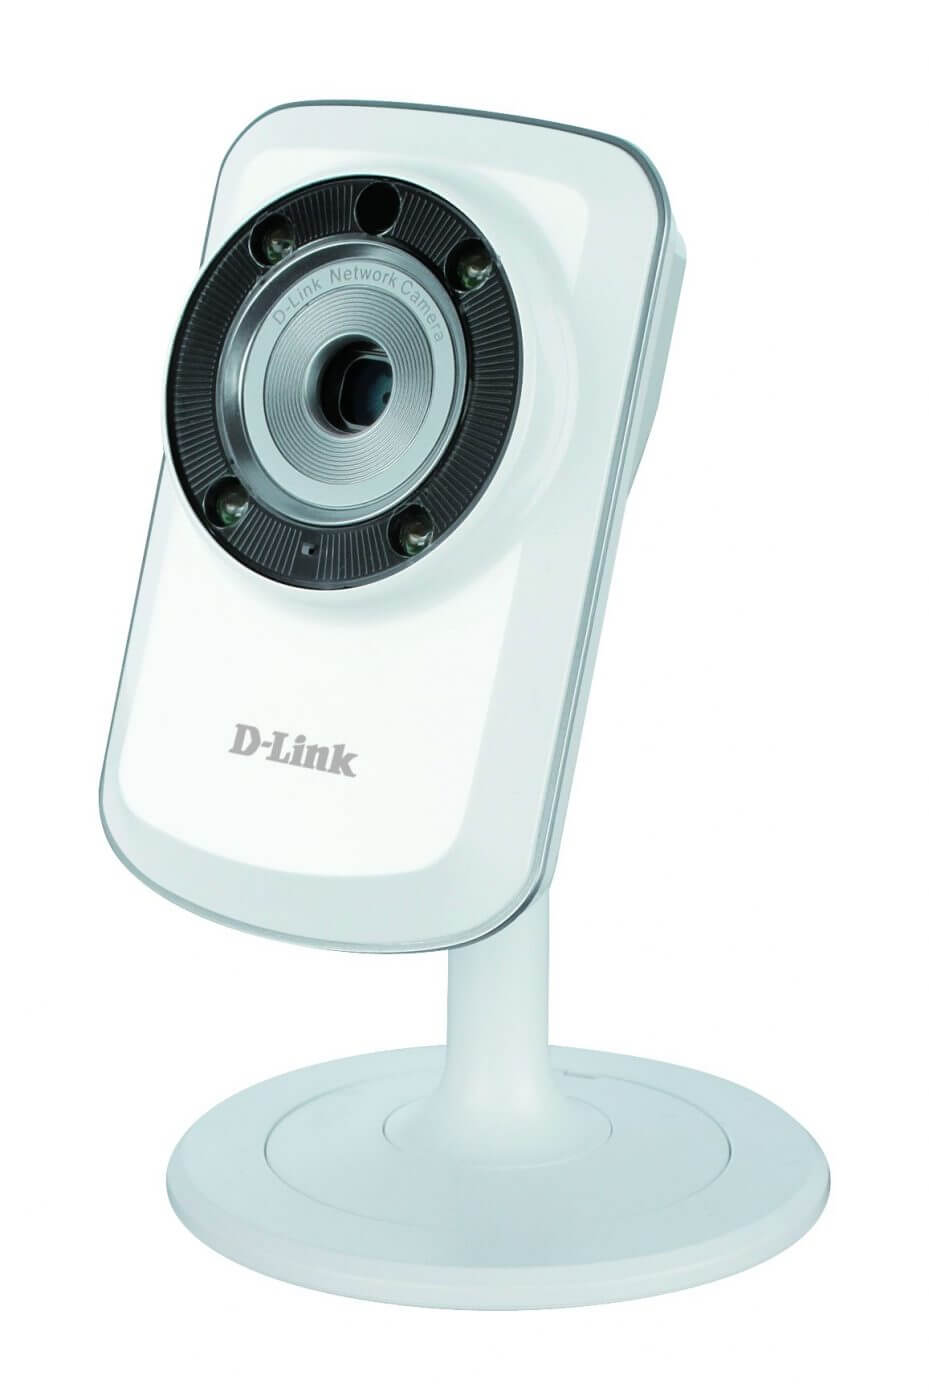 D-Link Cloud Cameras and Routers at CES - Geek News Central